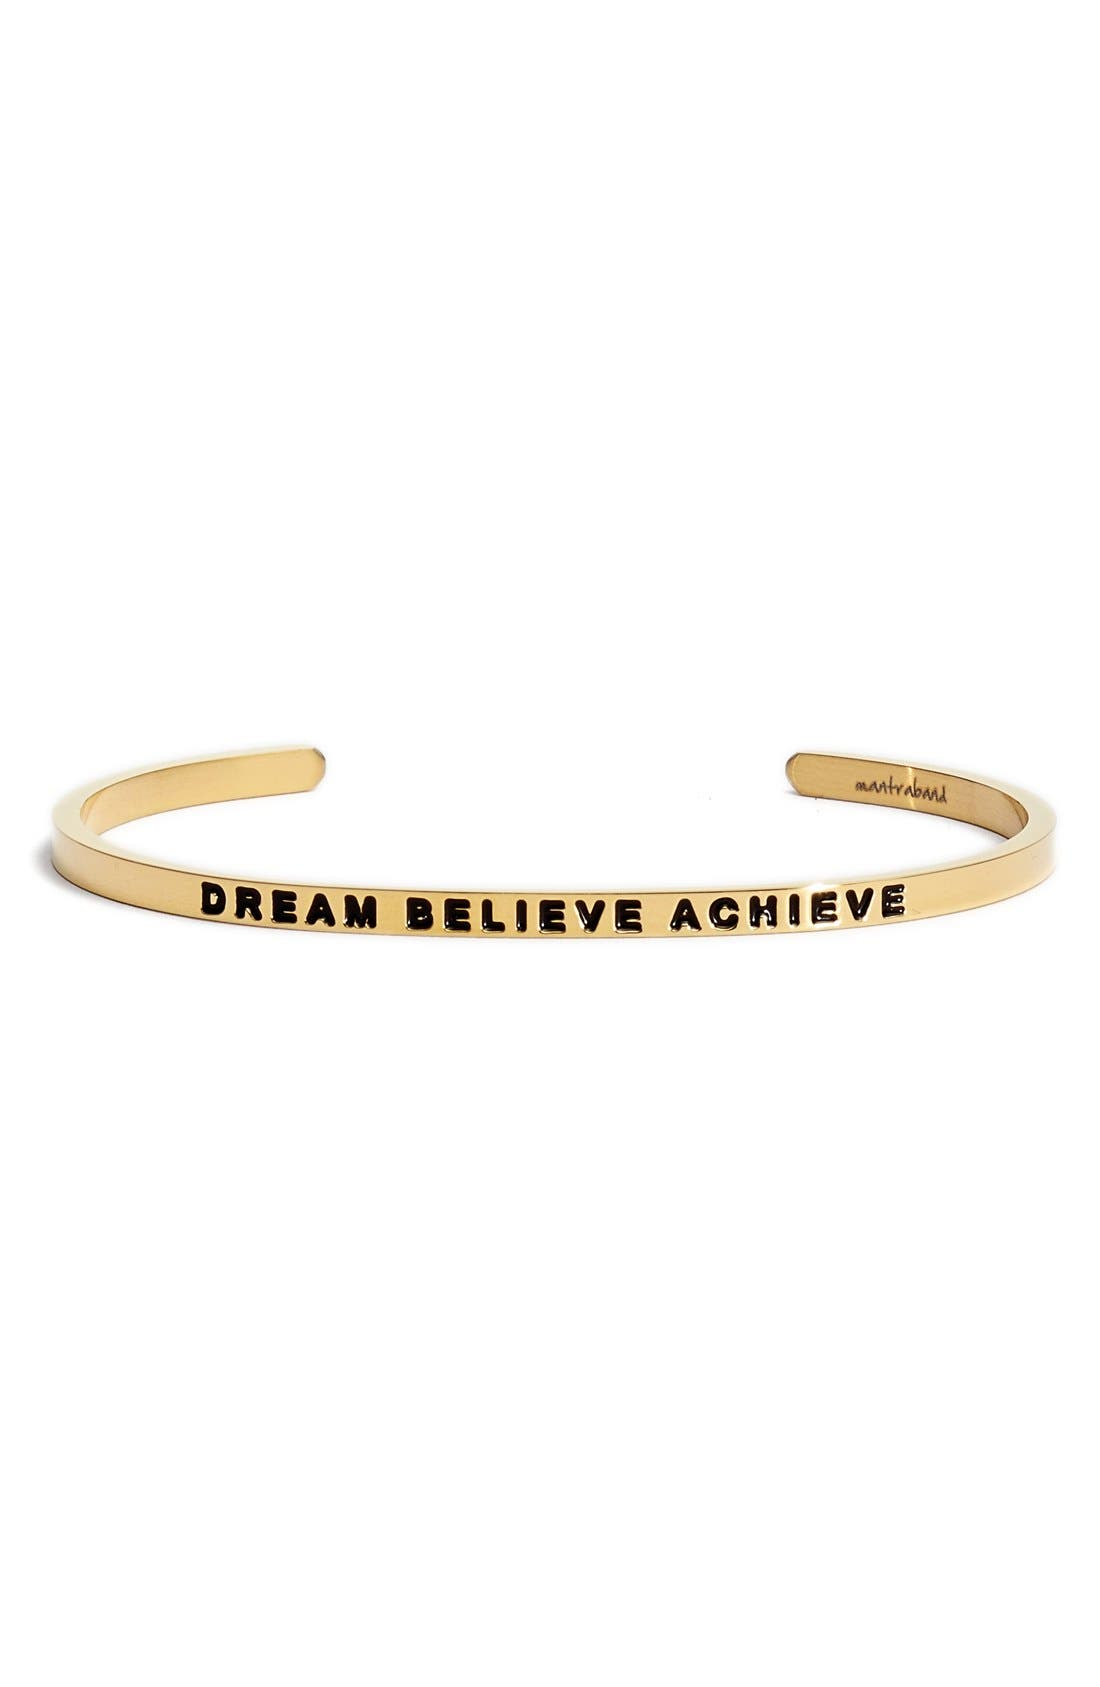 Alternate Image 1 Selected - MantraBand® 'Dream Believe Achieve' Cuff